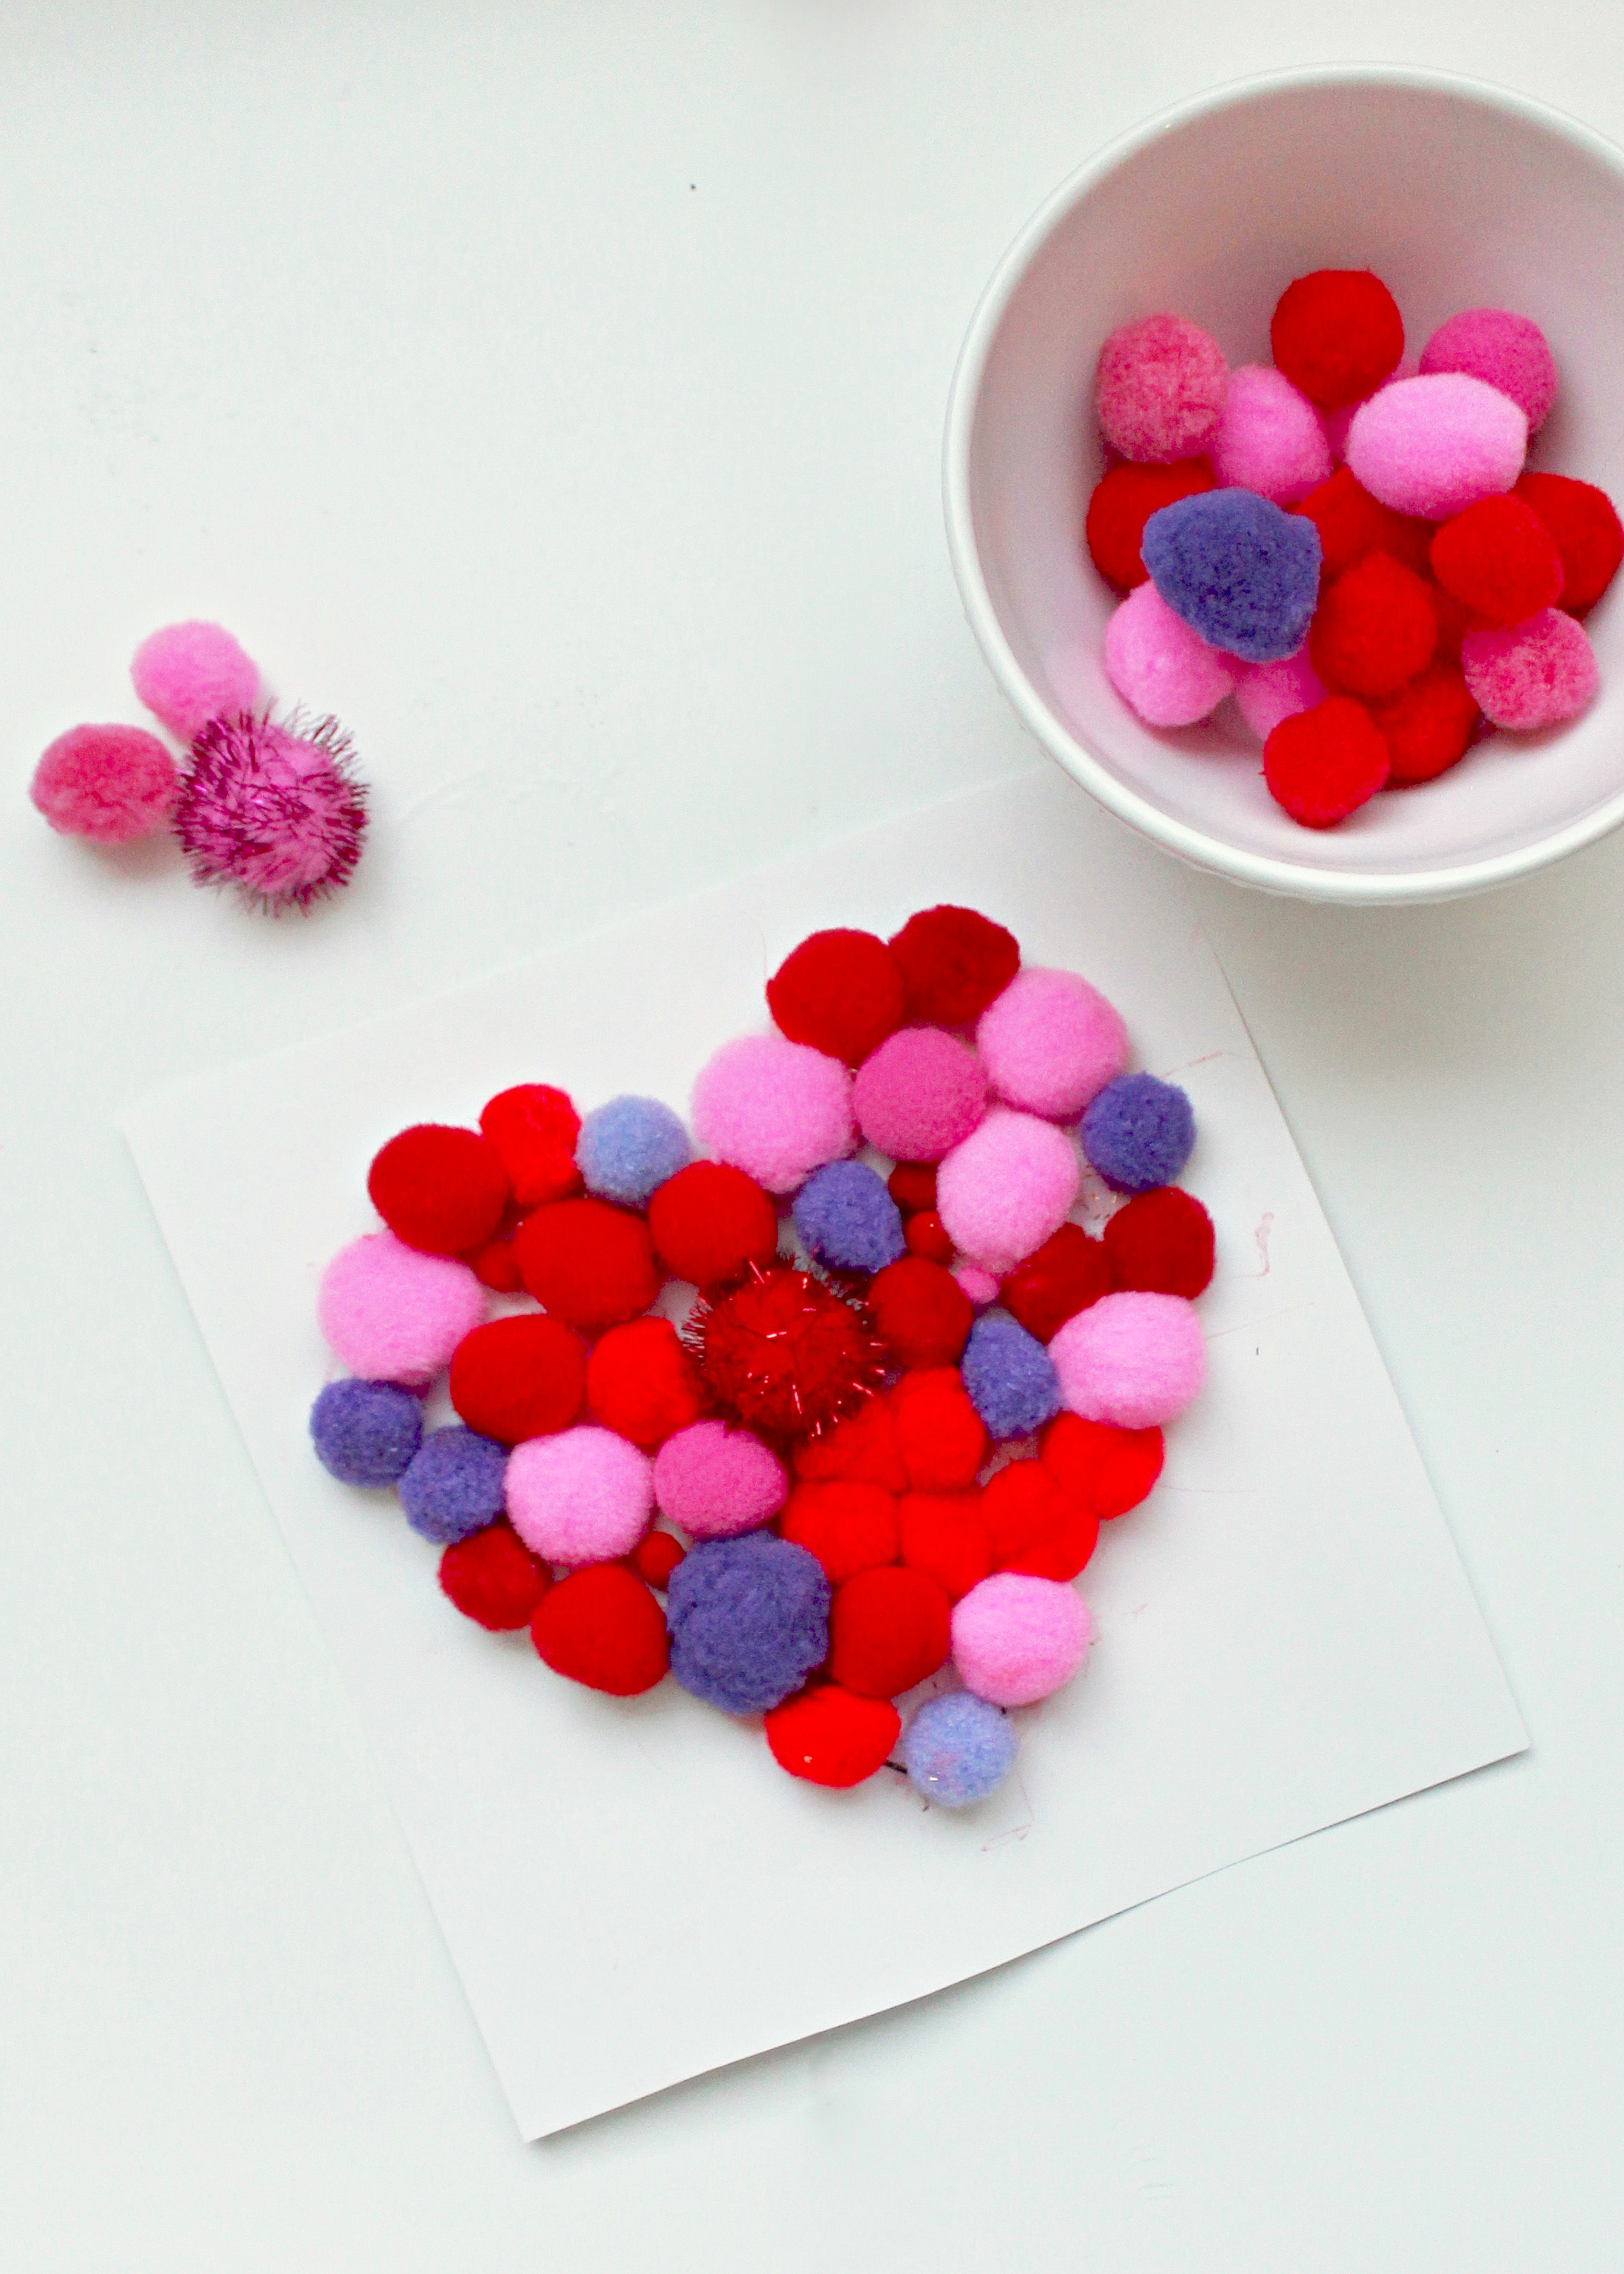 DIY Heart Crafts | Valentines Day Activities for Kids | Valentines Day Crafts | Mix Media Art for Kids | Children's Arts and Crafts | Toddler Art Activity | Activities with Pom Poms